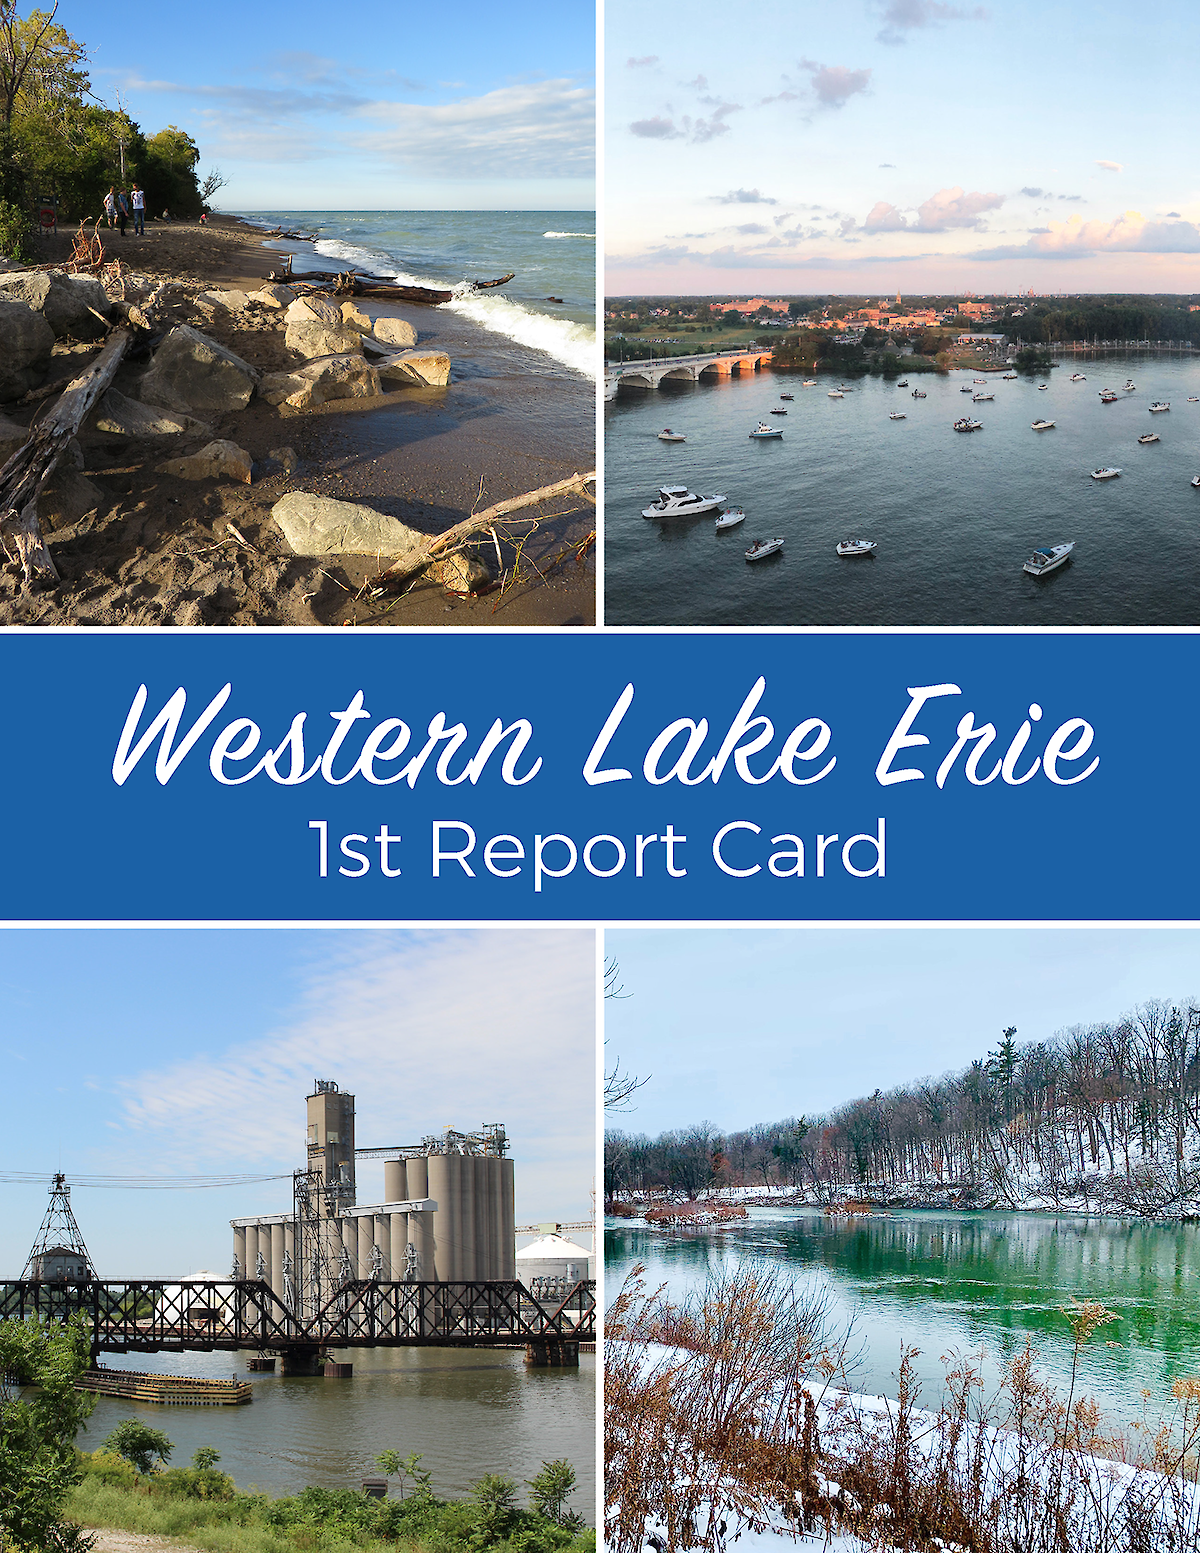 The cover of the Western Lake Erie Report Card with four photos of different parts of the lake and watershed areas.